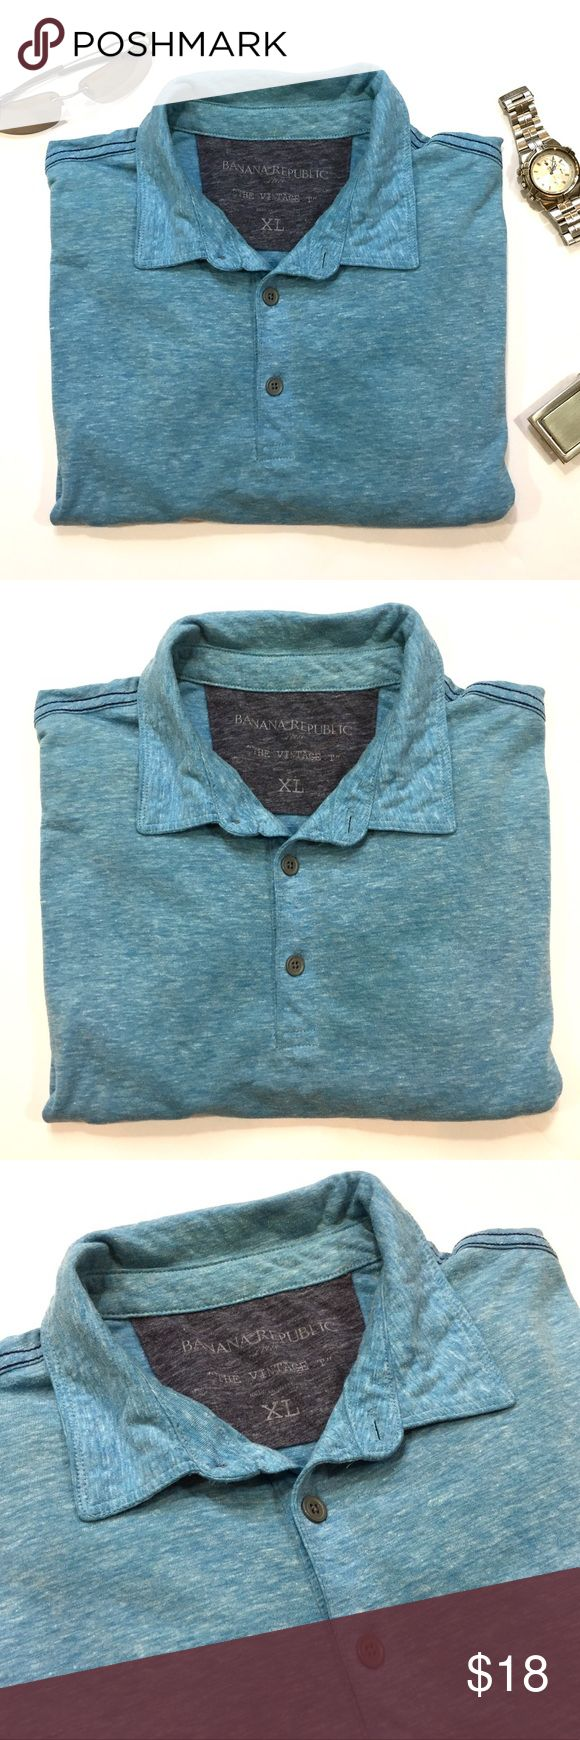 """Mens polo shirt by BANANA REPUBLIC - Size XL Men's short sleeve polo shirt by BANANA REPUBLIC. Size: XL. Color: Light Blue. Material: 50% Polyester, 38% Cotton, 12% Rayon. Pre-worn but in great shape. Retails for $55!  Measurements: Length - 30"""" Shoulder to sleeve - 9"""" Armpit to armpit - 23.5"""" Banana Republic Shirts Polos"""